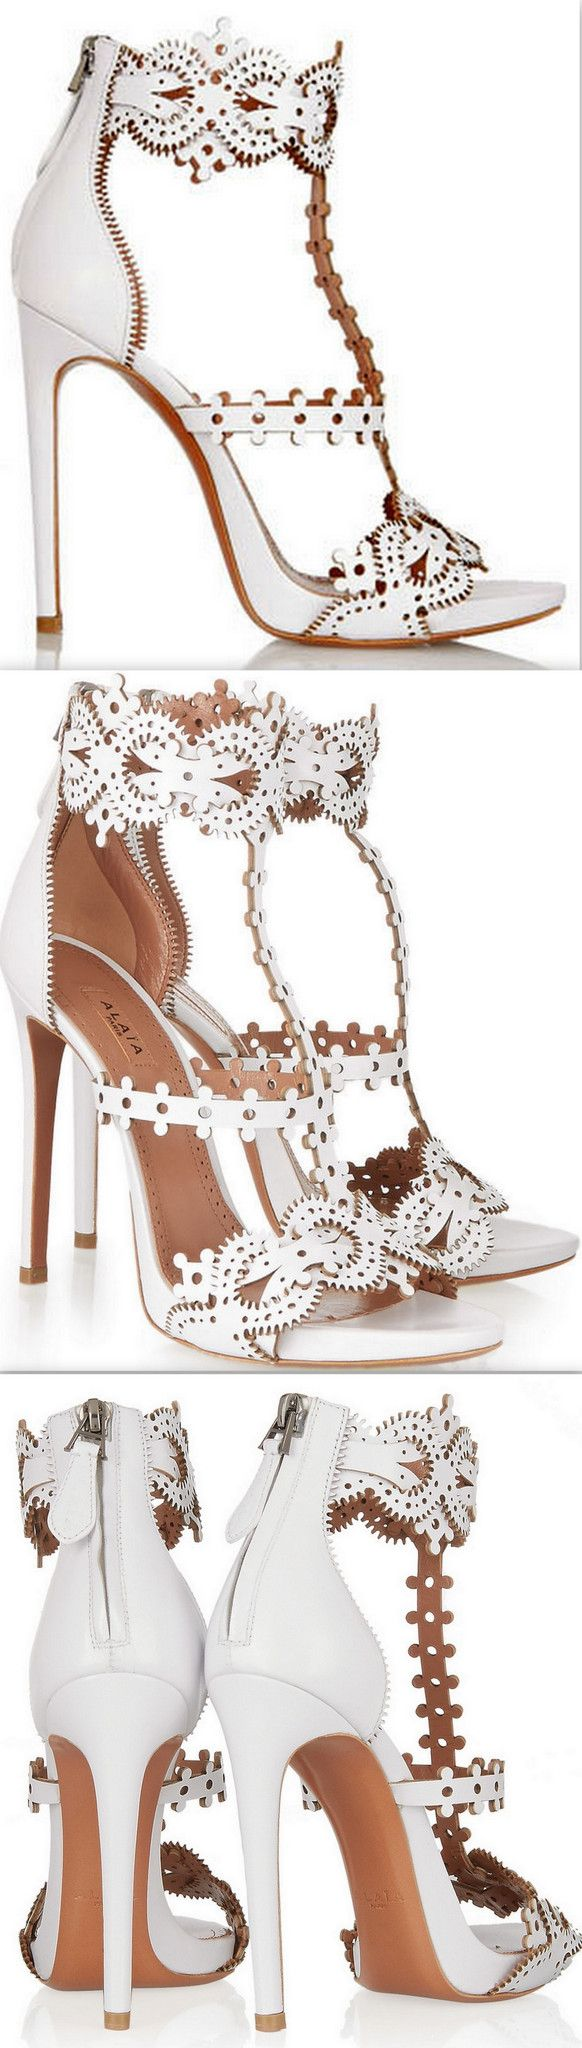 Laser-Cut Leather Sandals, White